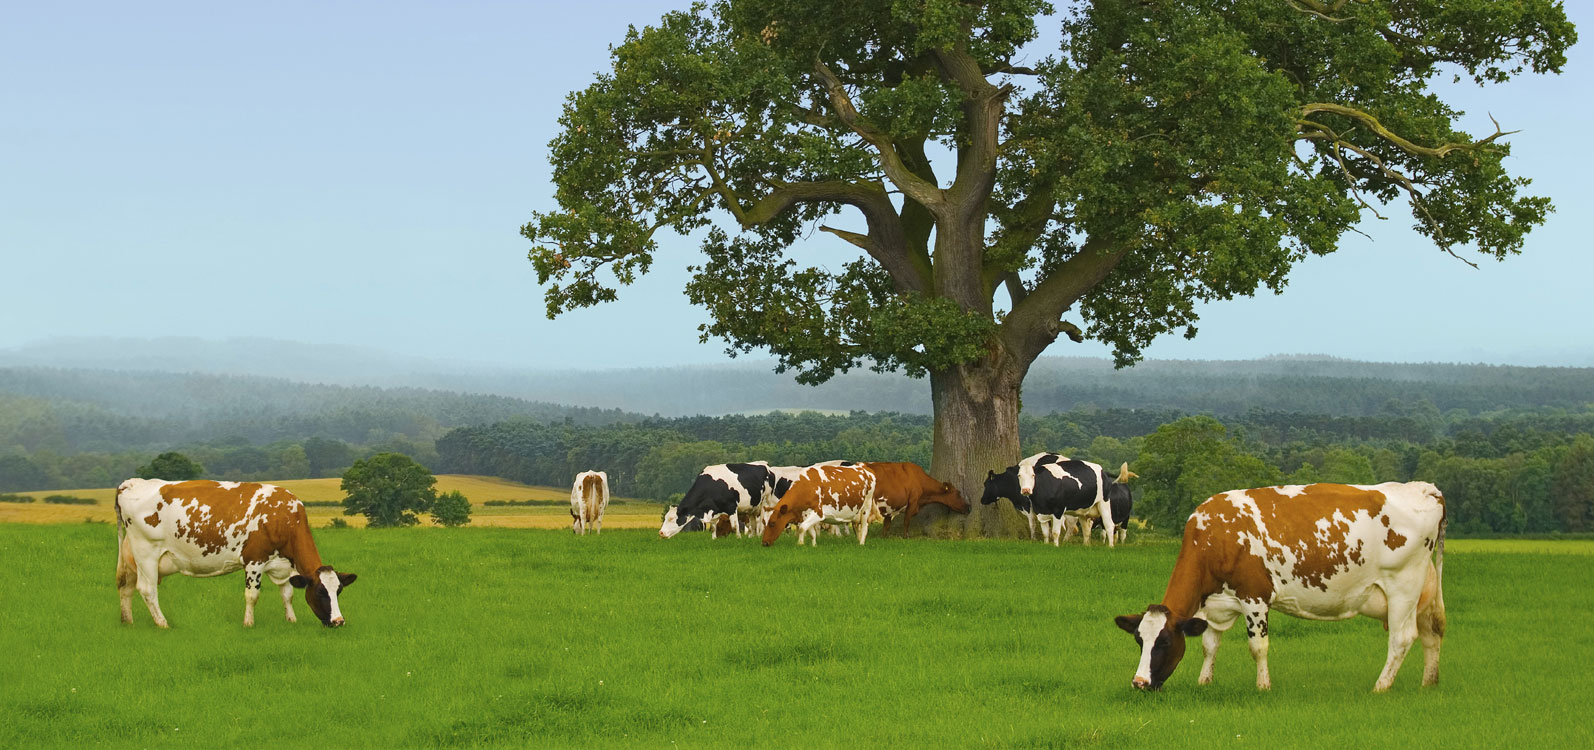 Instead Of Guaranteeing A Fair Price For UK Dairy Farmers The Governments Response Has Been